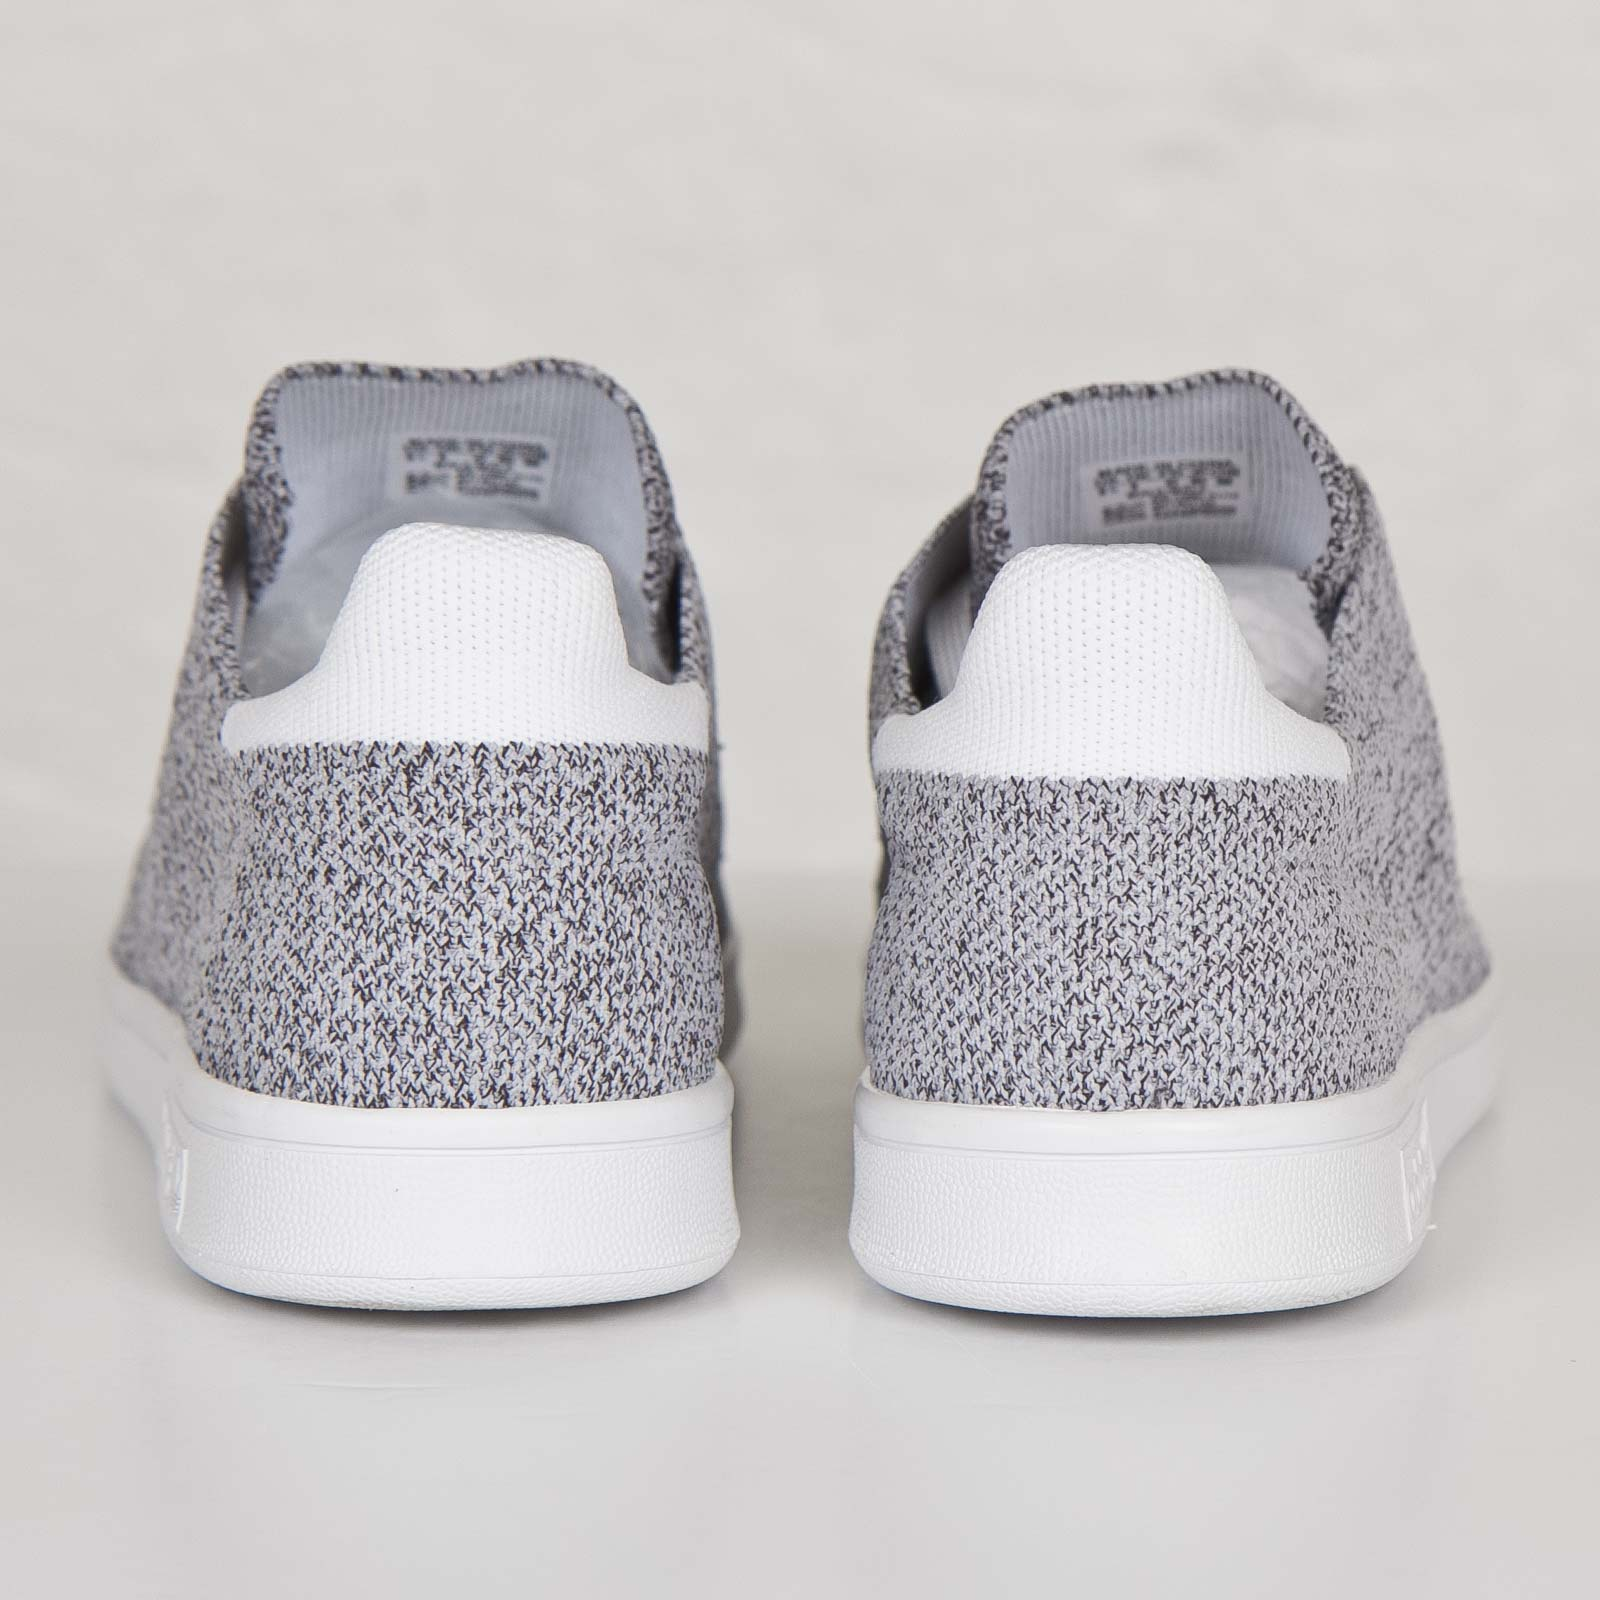 uk availability e87ff 34950 adidas Stan Smith Primeknit NM - B27152 - Sneakersnstuff ...